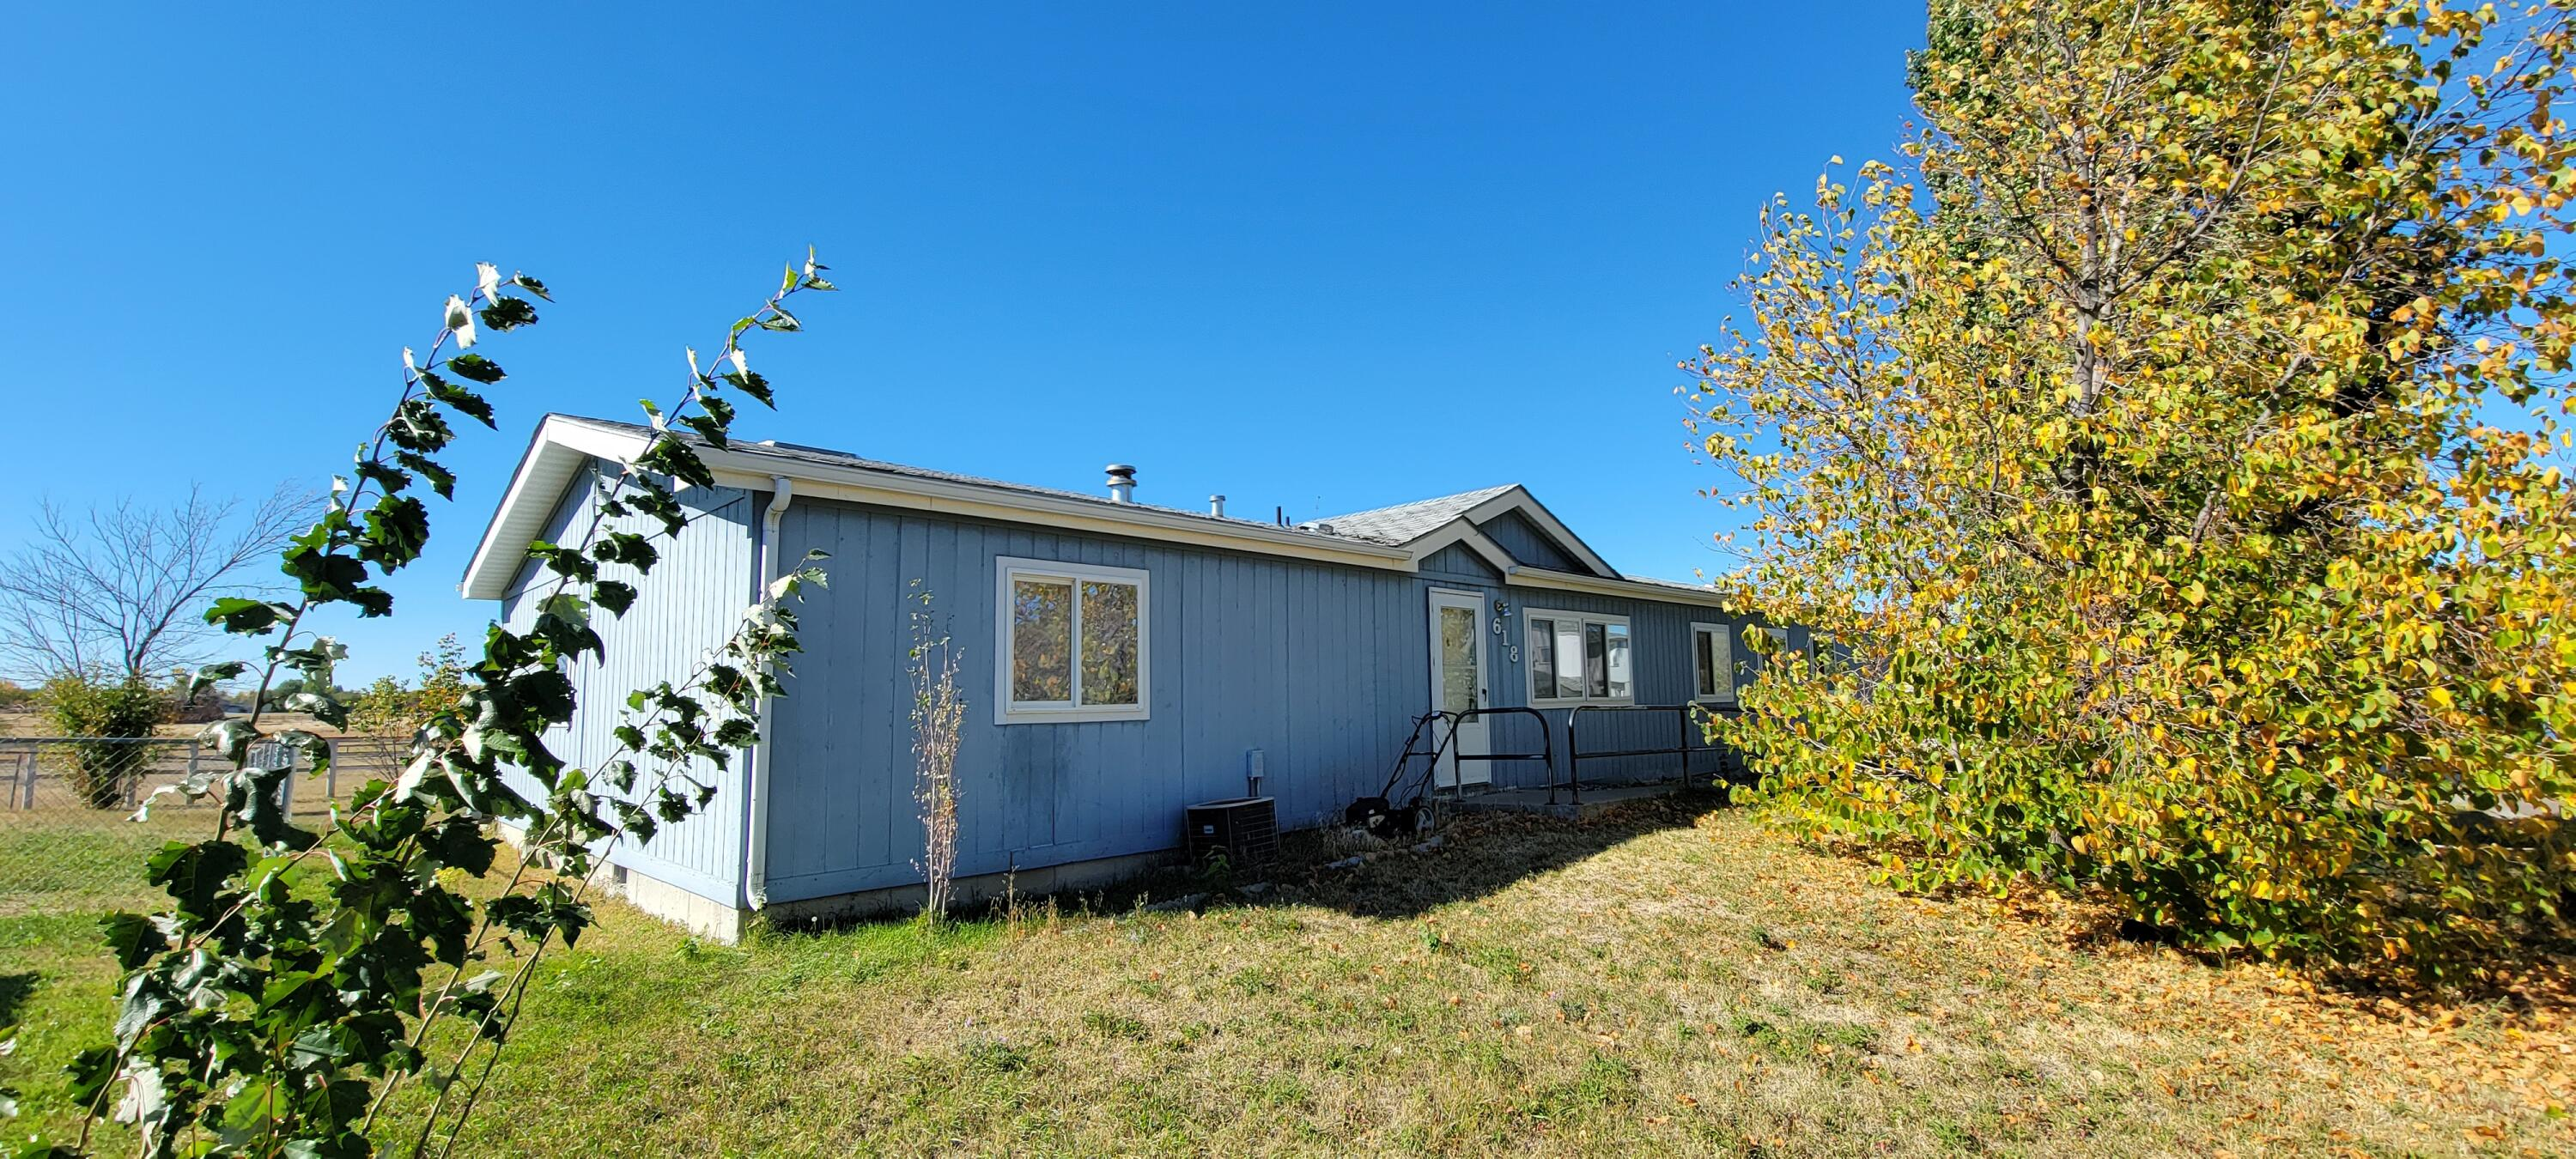 Bring this beautiful ONE LEVEL home back to its shine!  East end home close to Malmstrom Air Force Base. 1993 manufactured home on permanent foundation. Imagine enjoying Montana sunsets from your back deck. Spacious 4 bedrooms/ 2 Bath with separate living room and family room. Den could be used as office or a toy room. Need some TLC but has great potential.Property sells in ''AS IS'' condition.Listed by Dori Johnson.